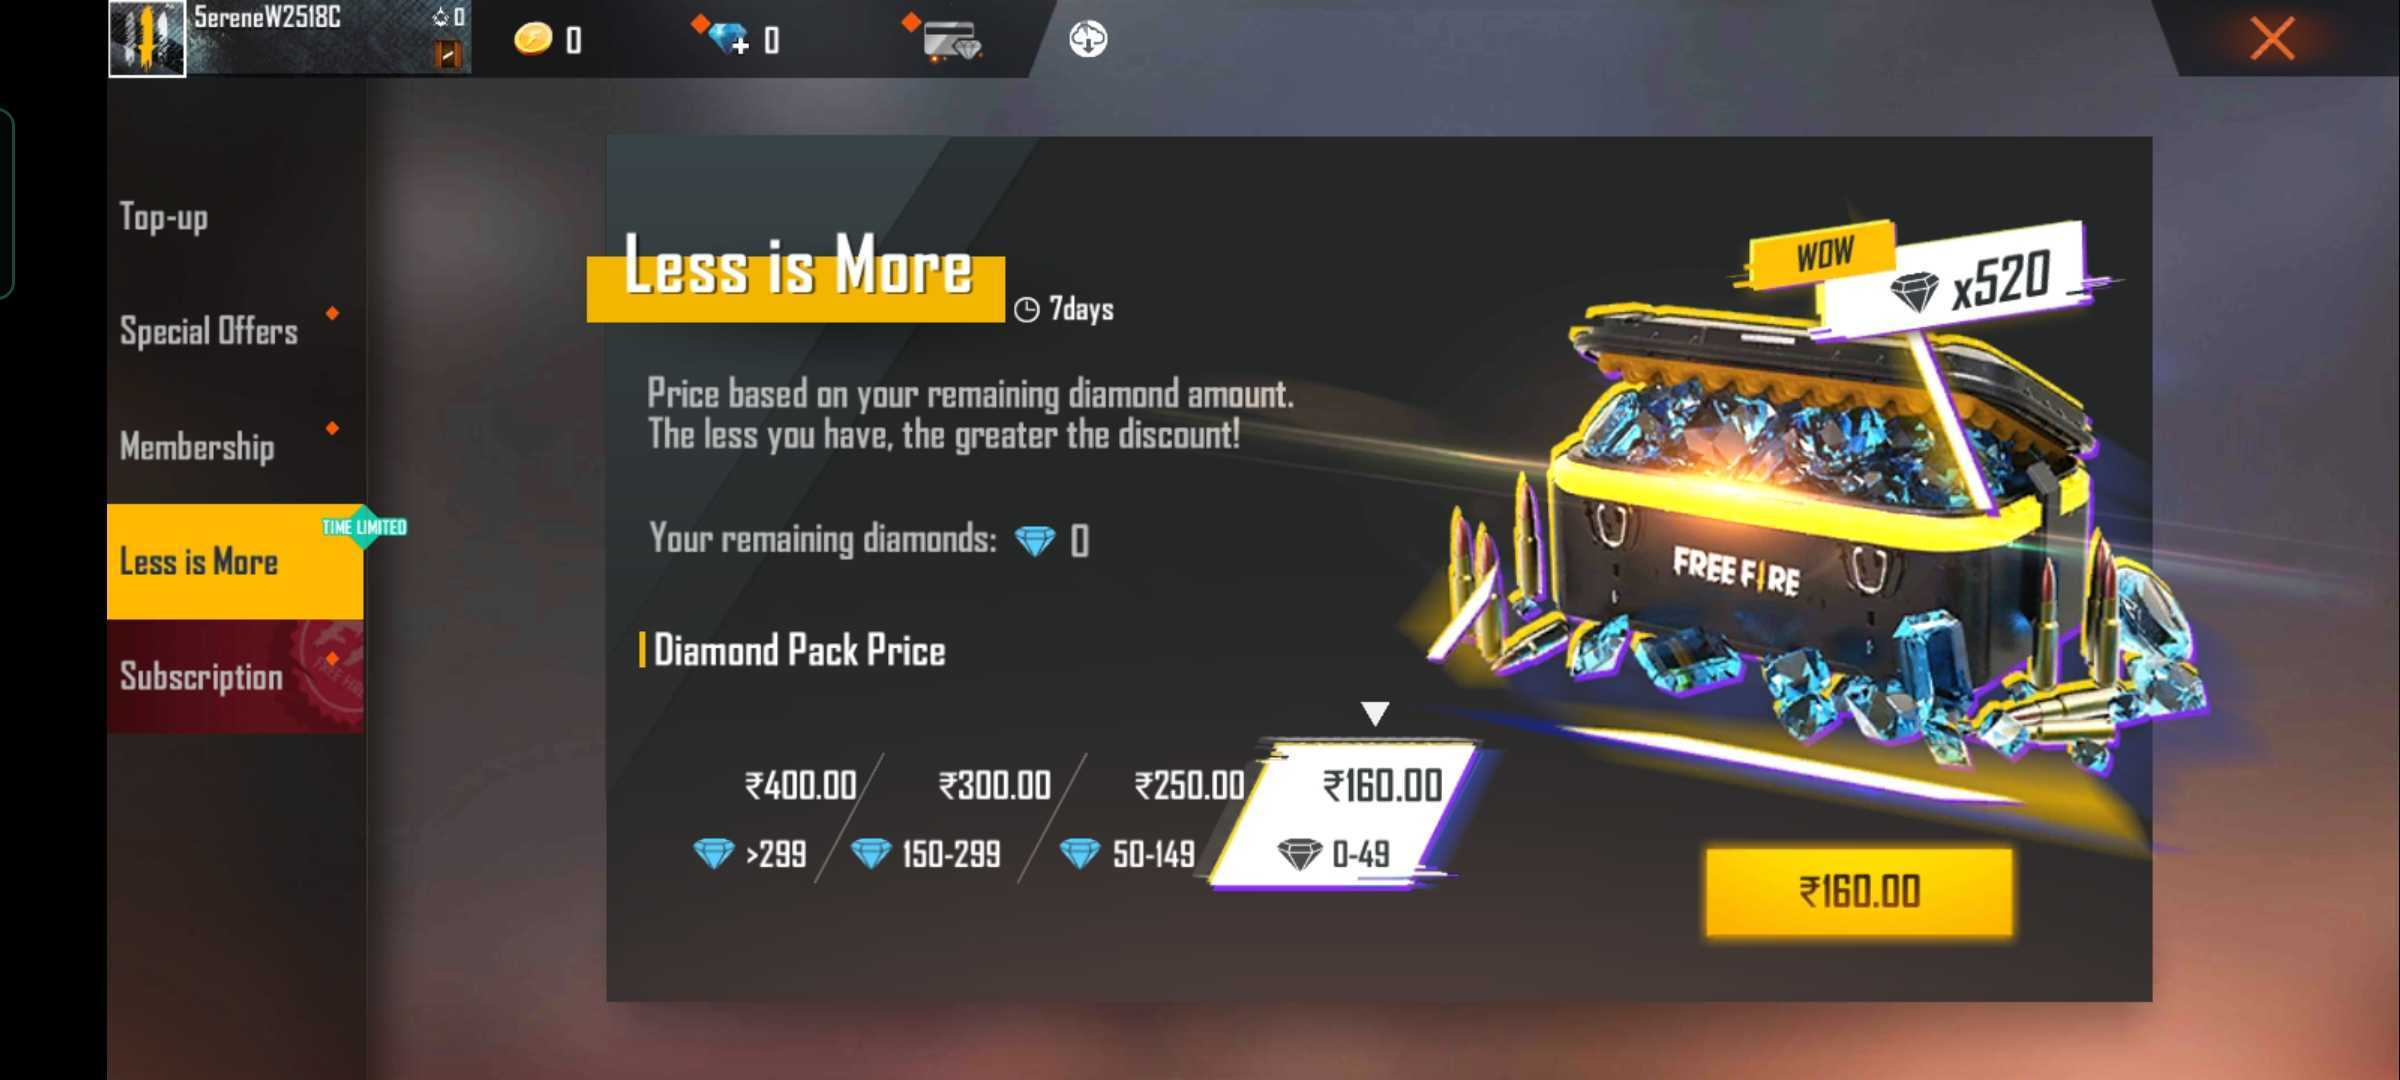 Free Fire Less is More event